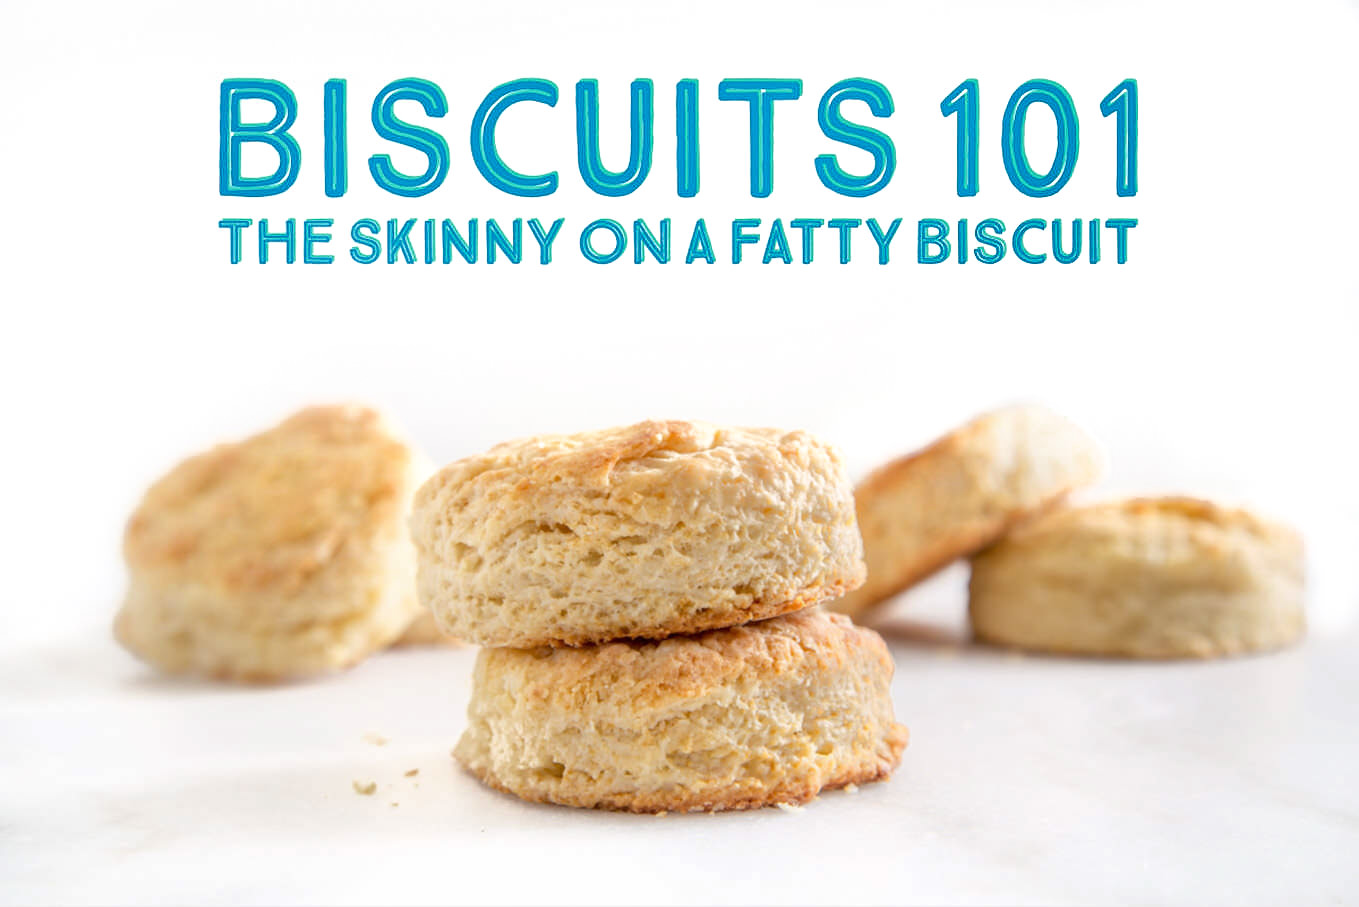 Biscuits 101 on SouthernFATTY.com